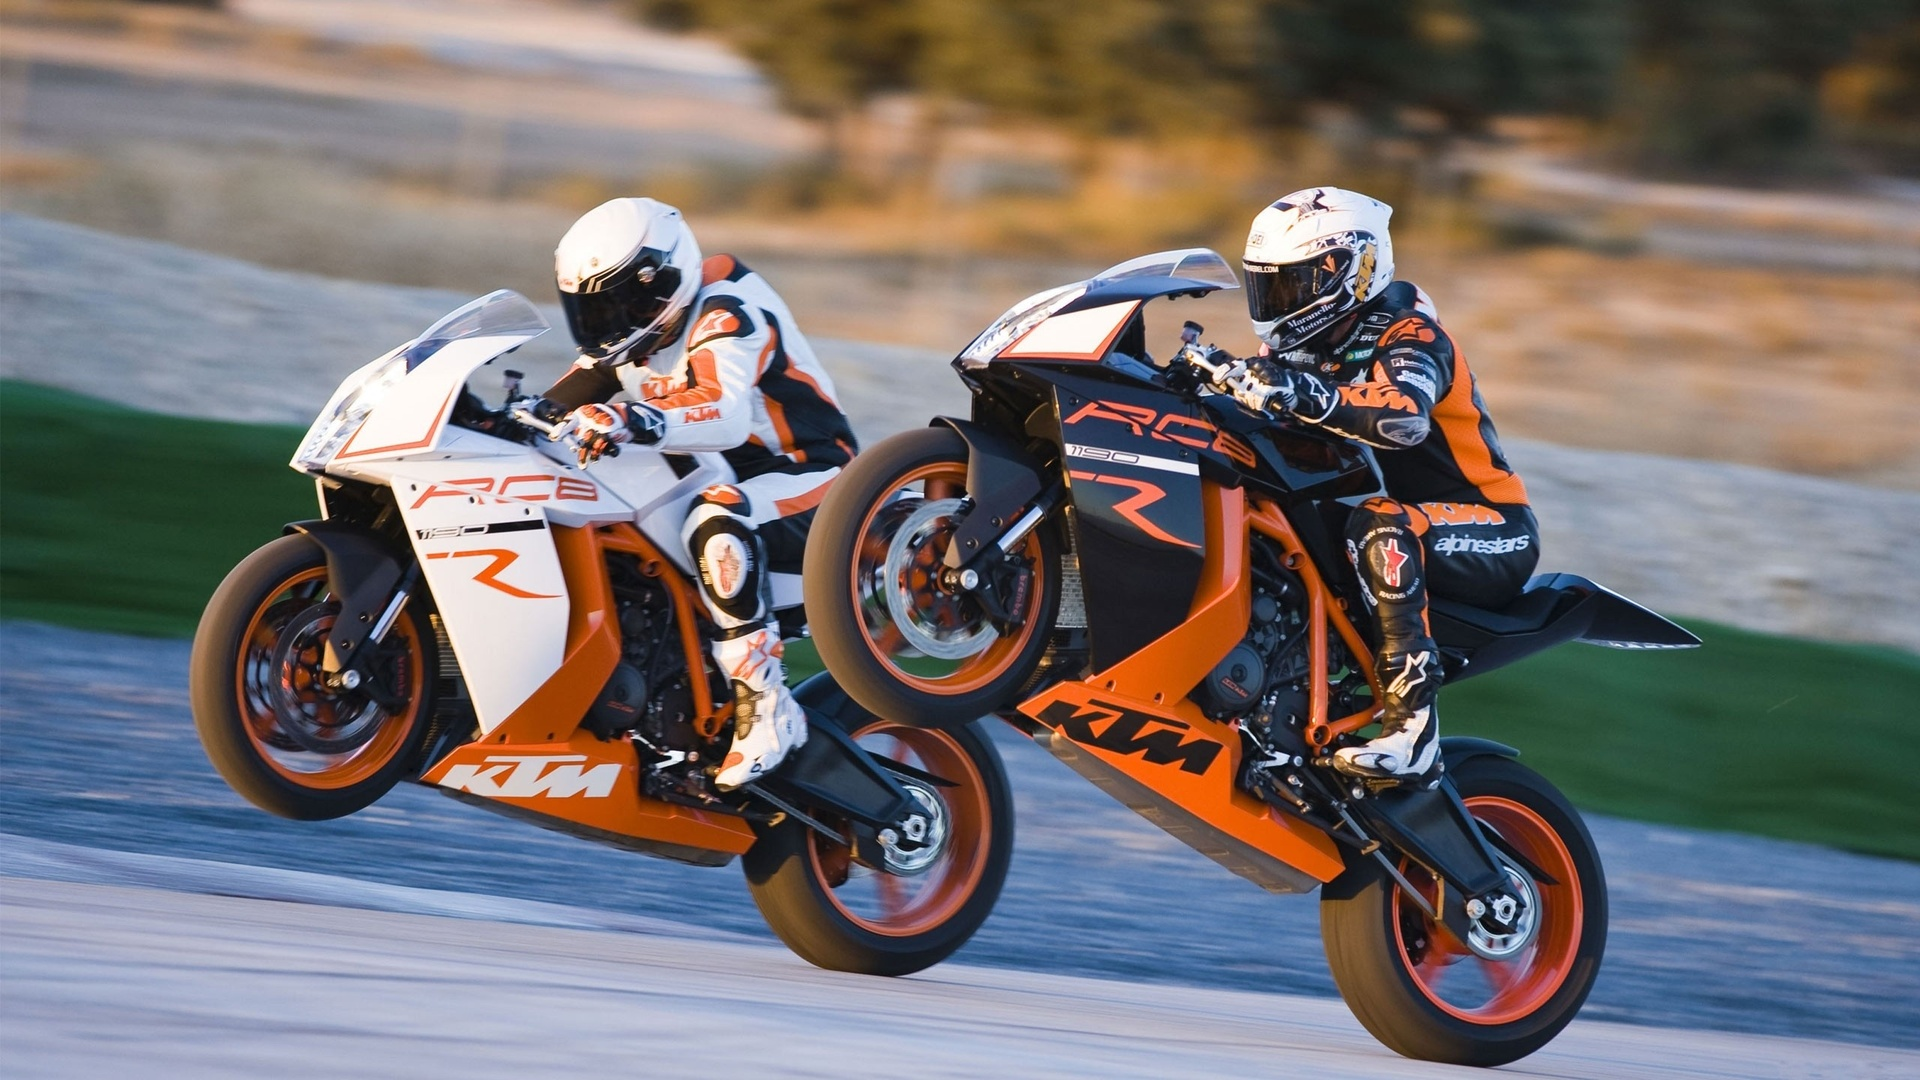 Racing Bike HD Wallpaper